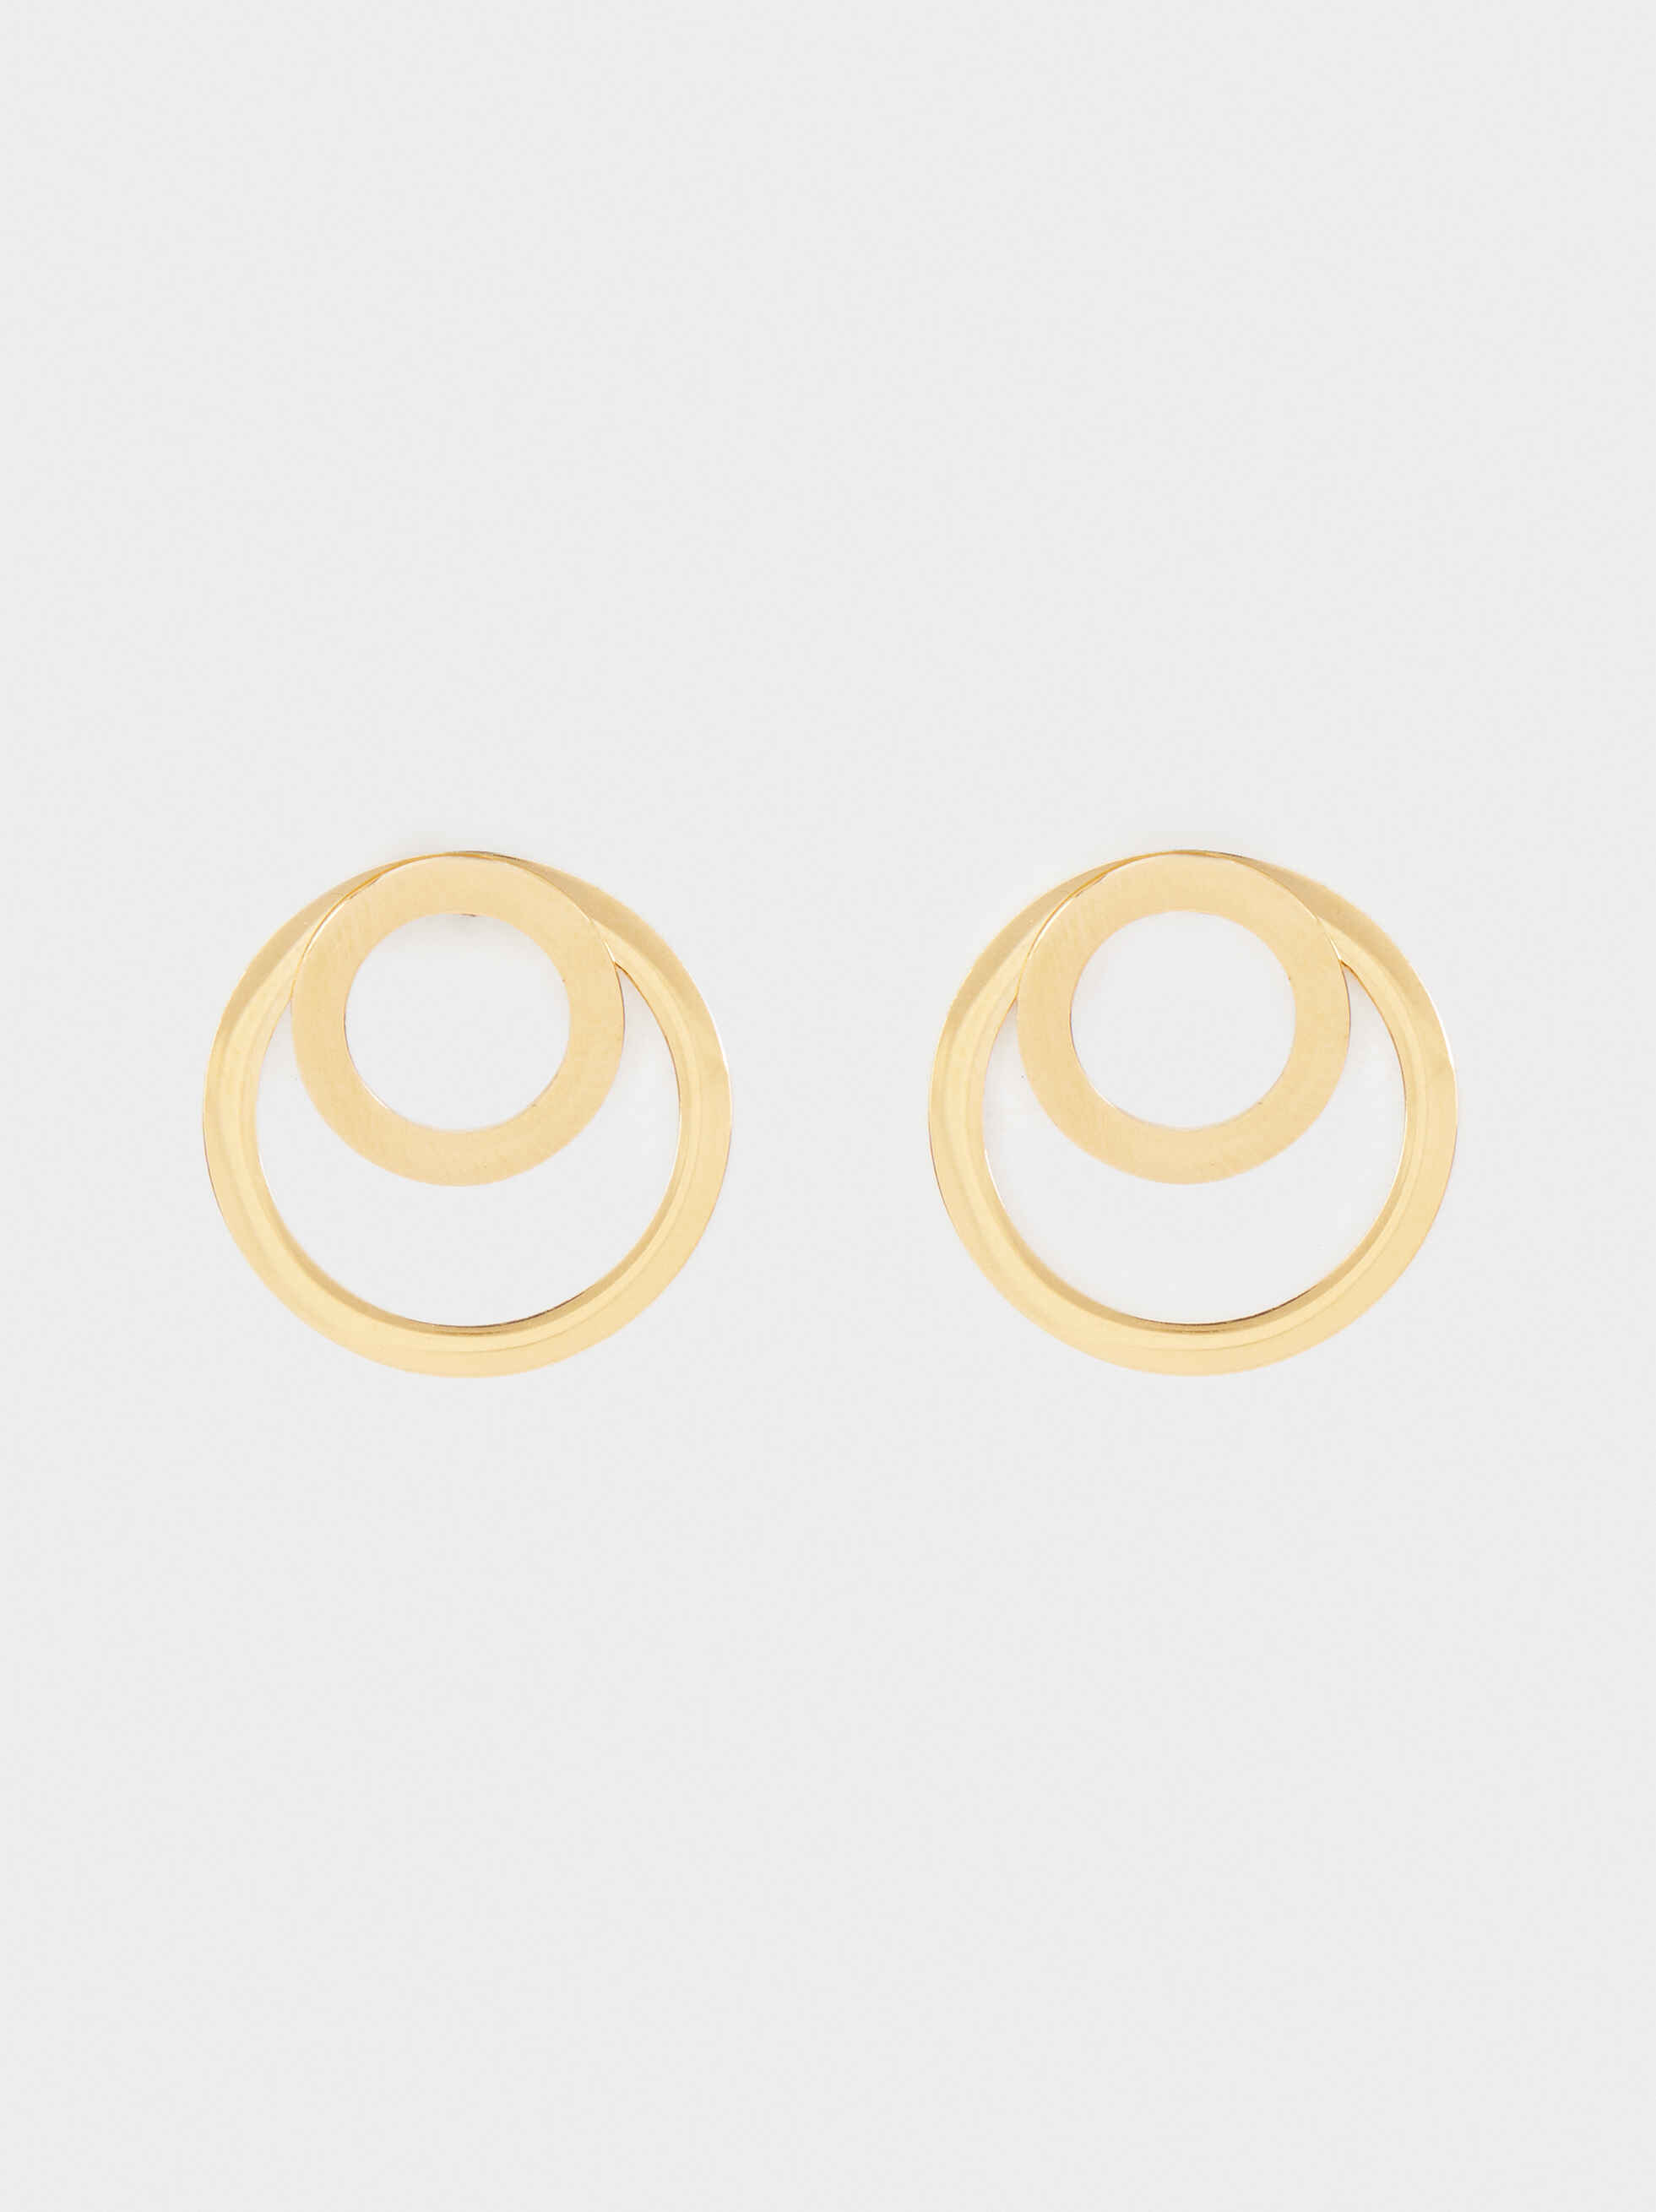 Short Gold Stainless Steel Earrings, , hi-res